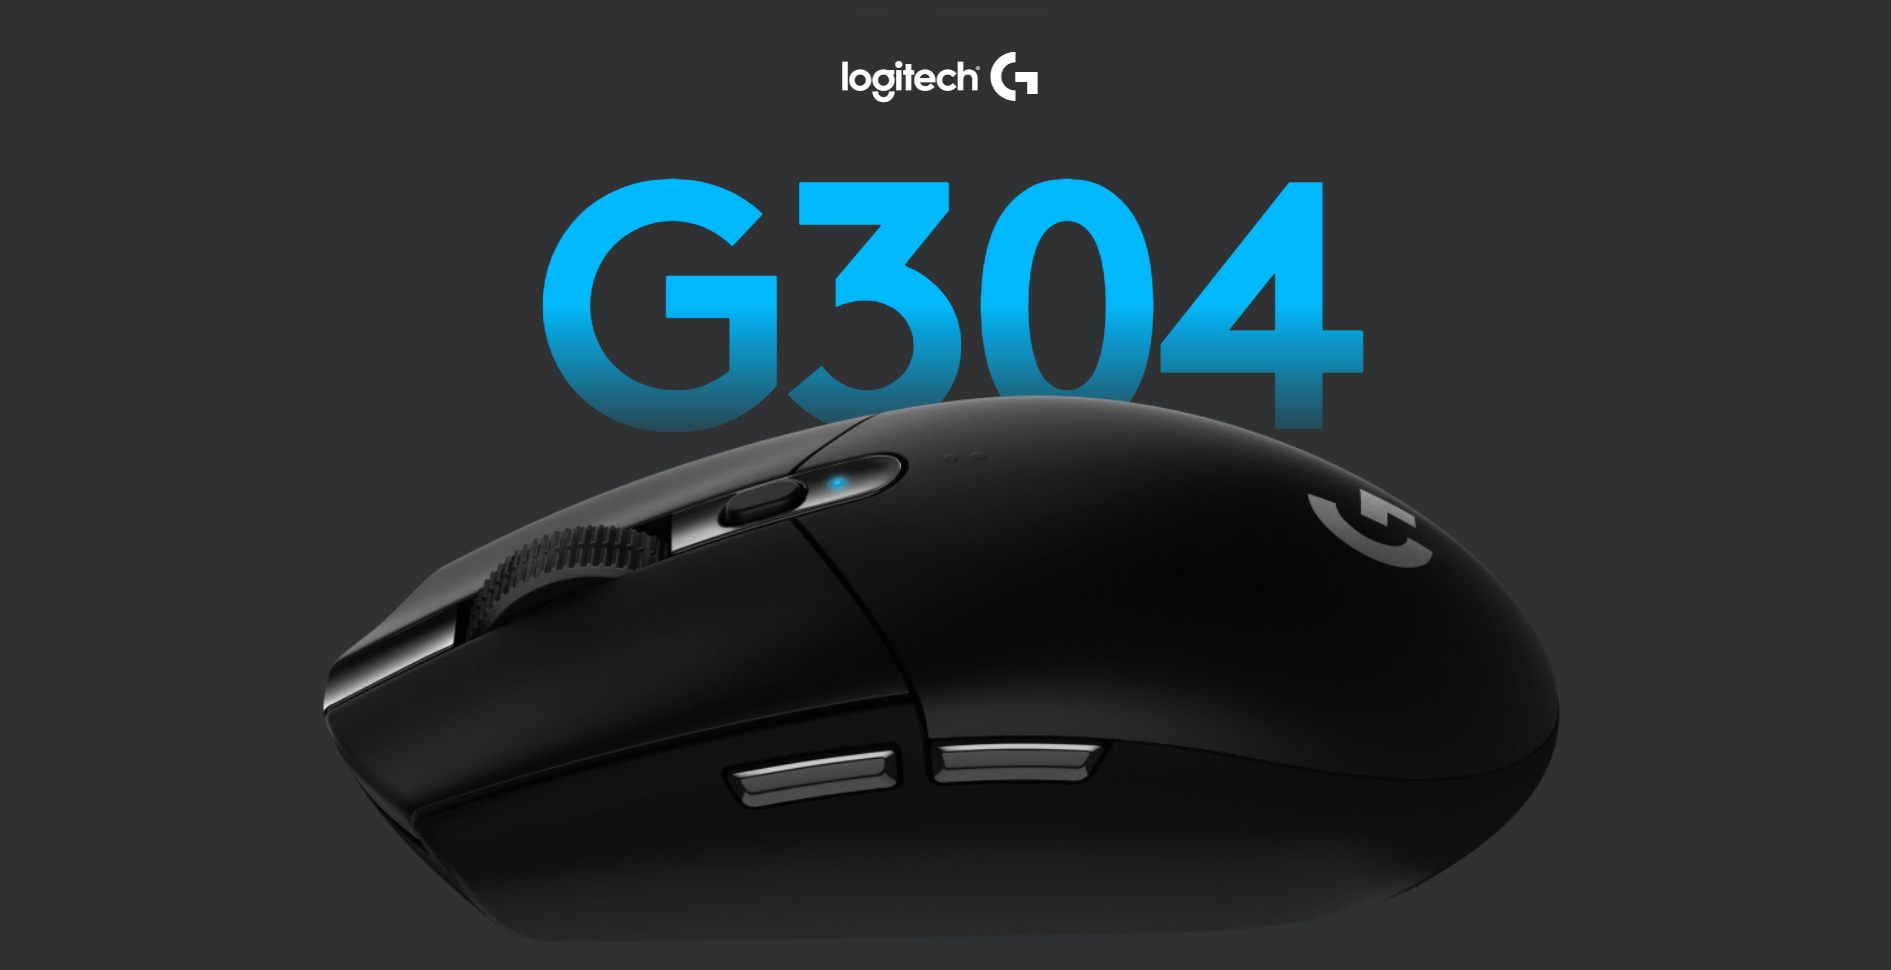 Logitech G304 Lightspeed Wireless Gaming Mouse at an affordable price for serious gamers on a budget.